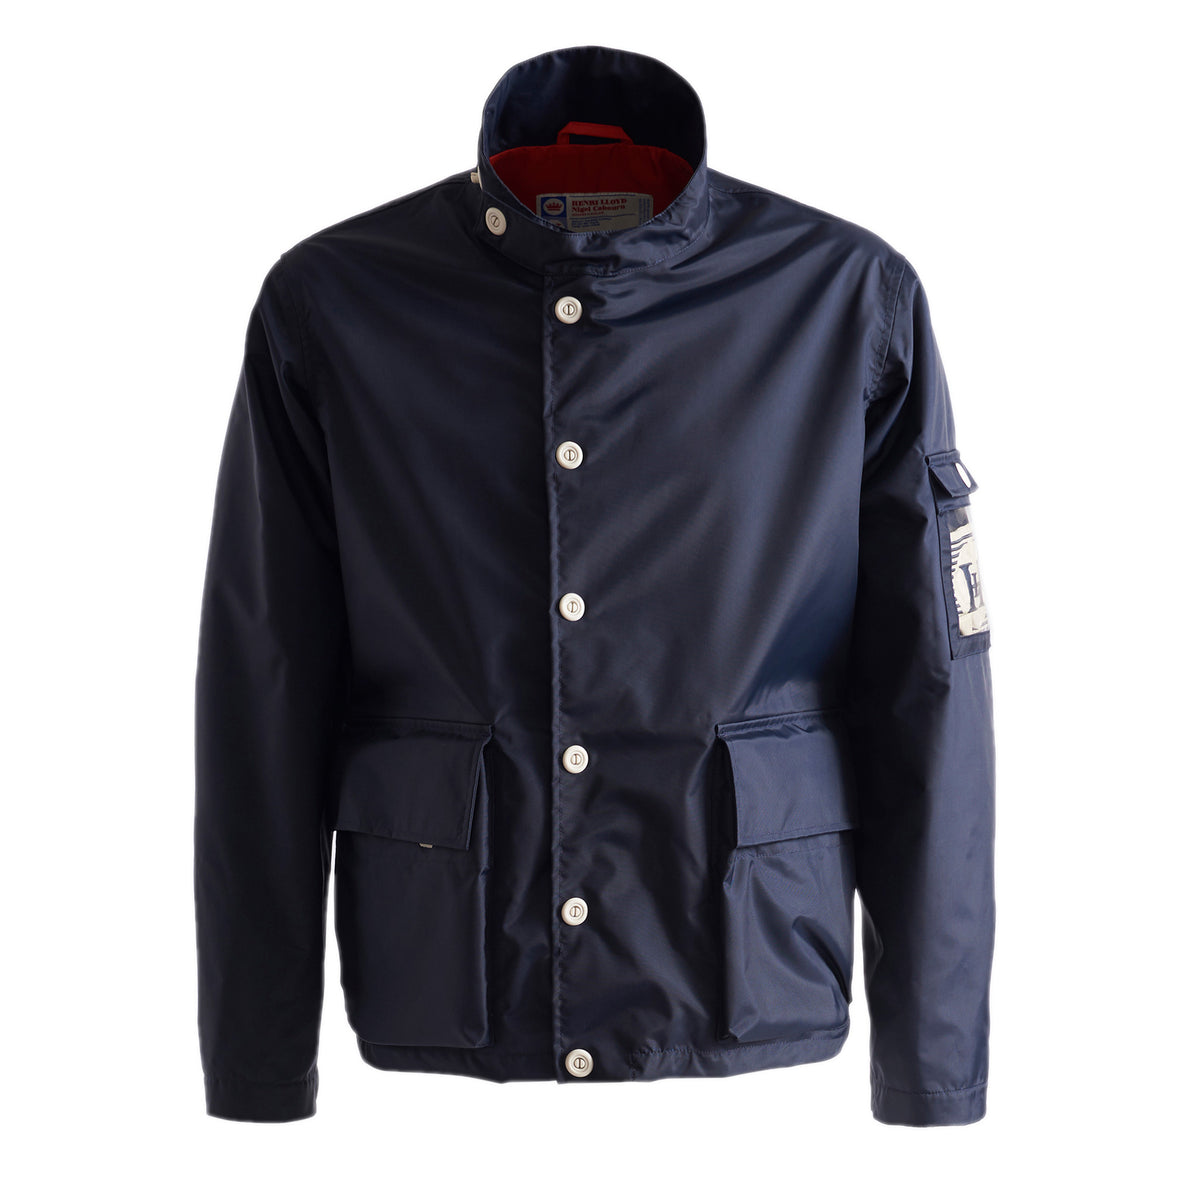 Henri Lloyd X Nigel Cabourn Waterproof Deck Jacket Navy Black Front